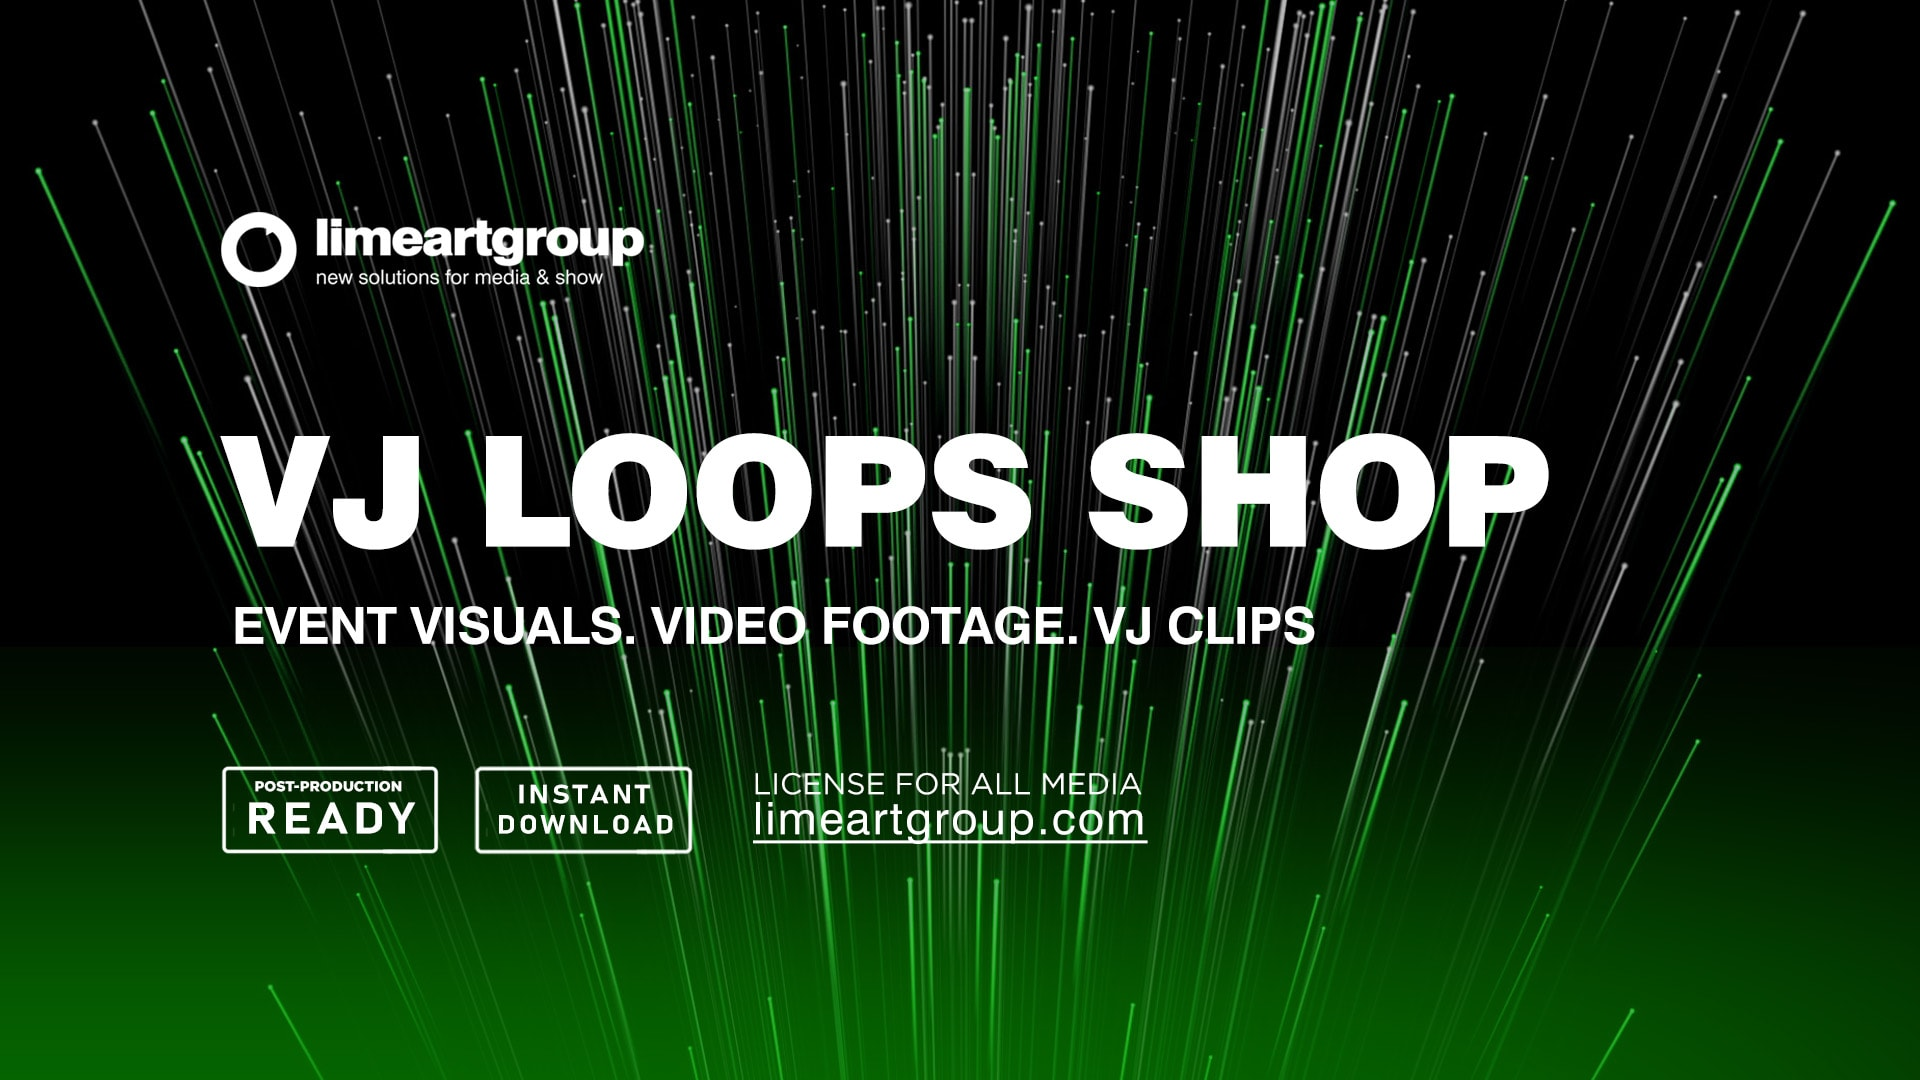 VJ Loops Shop  Video Footages at LIME ART GROUP Shop